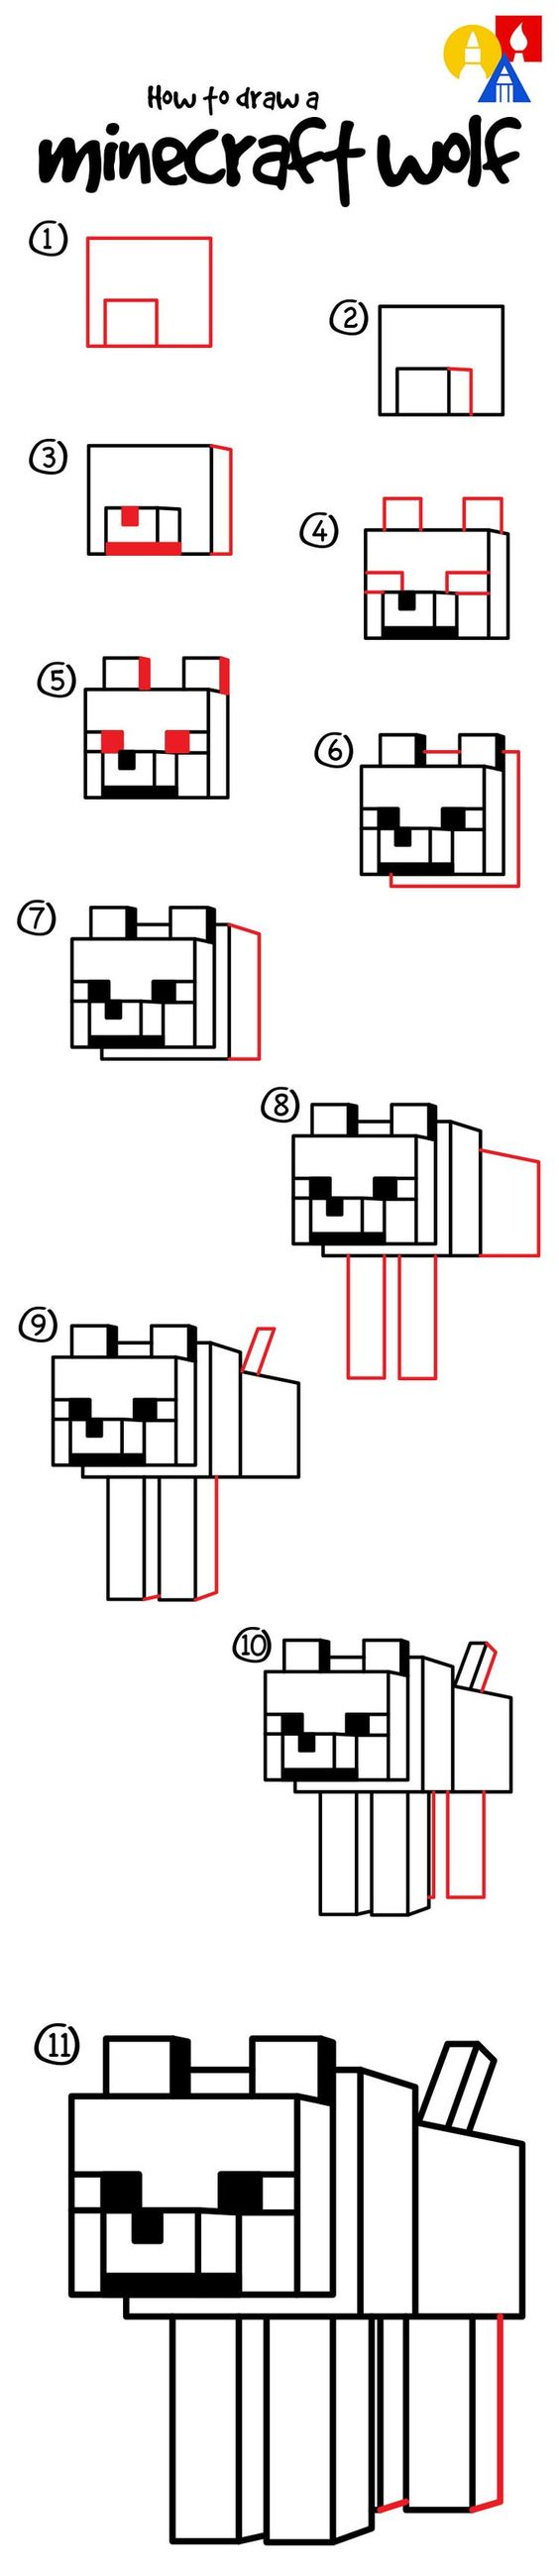 art for kids hub how to draw a minecraft